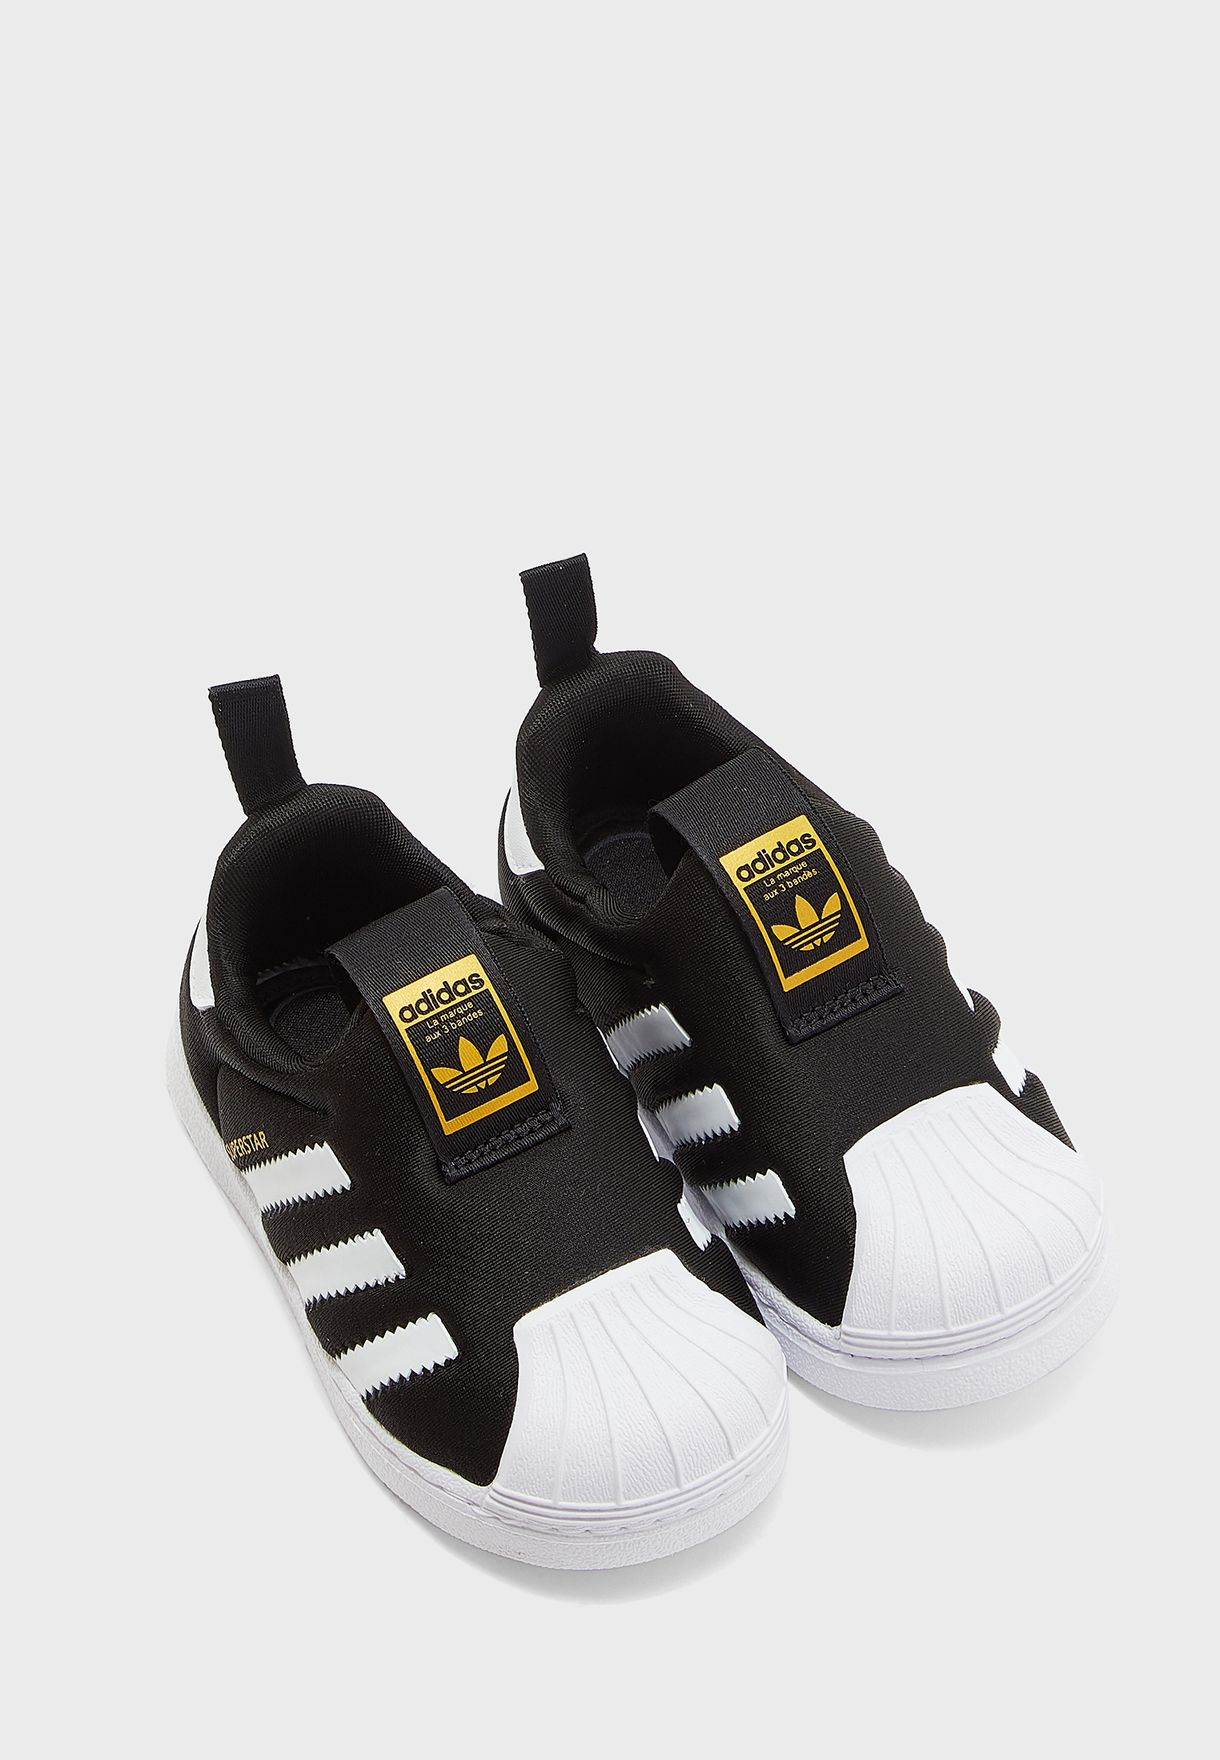 2c33e4e64c37 Shop adidas Originals black Infant Superstar 360 S82711 for Kids in ...